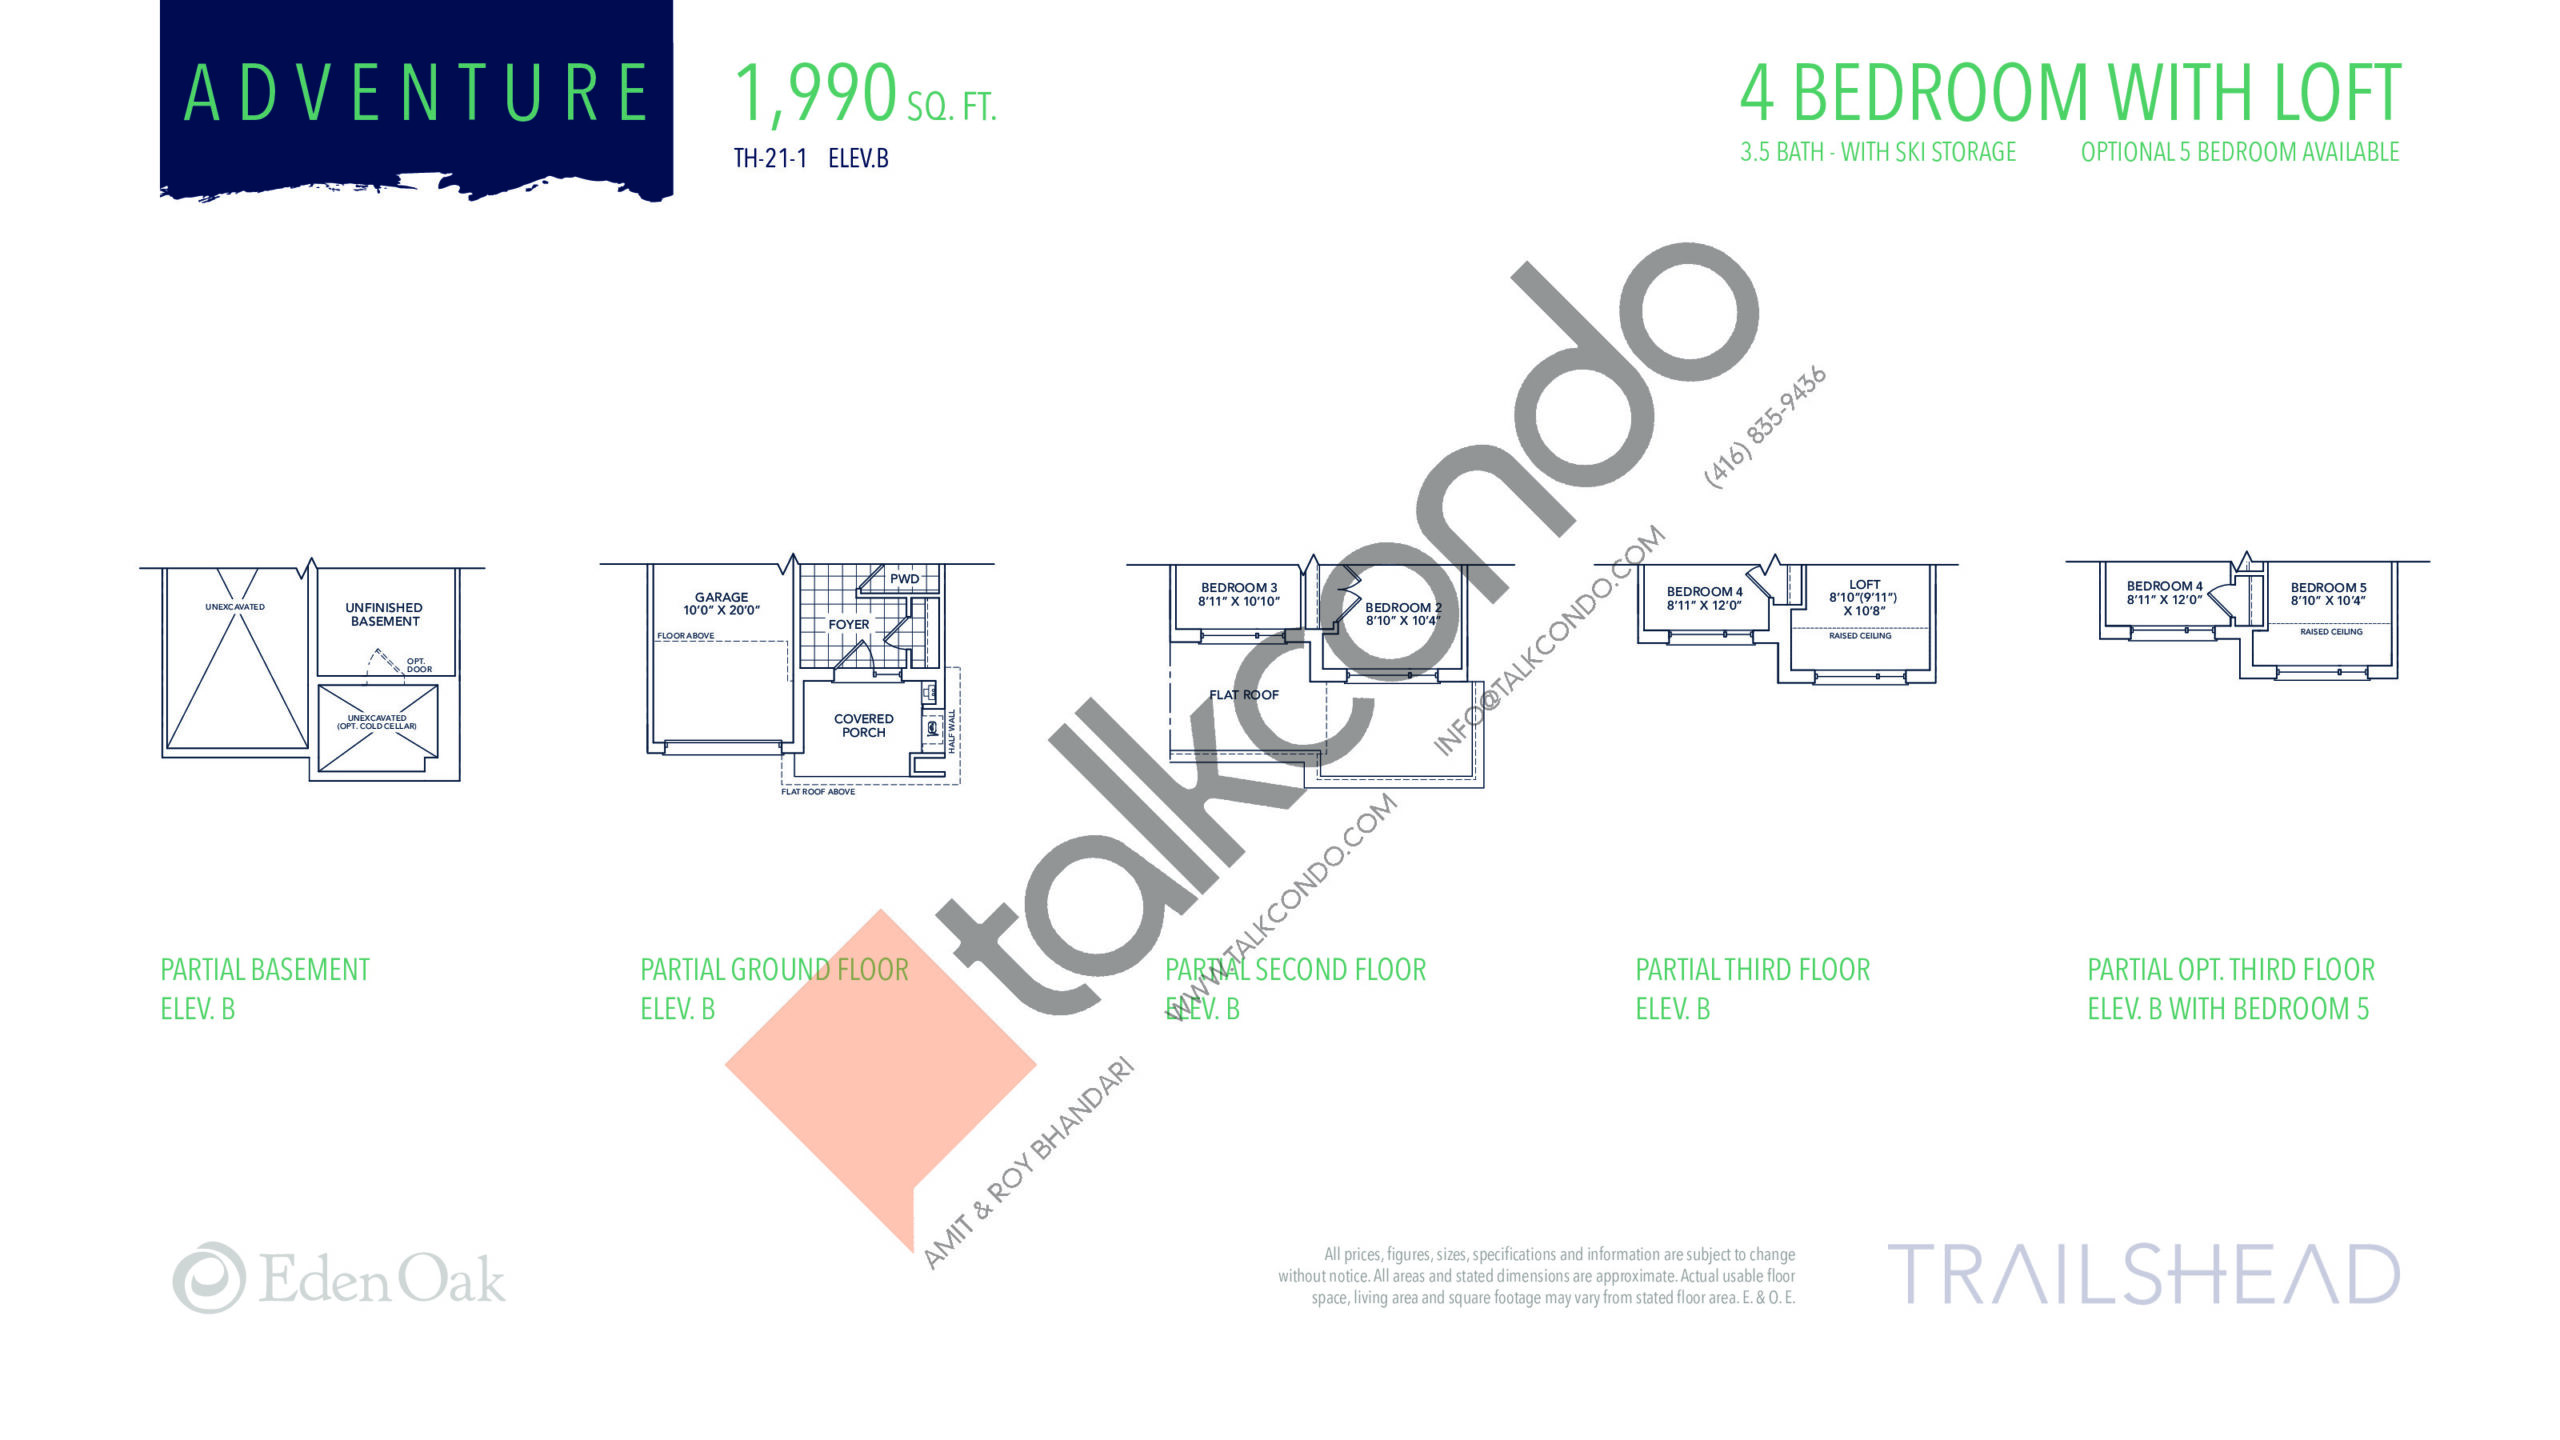 Adventure (2/2) Floor Plan at Trailshead Towns - 1990 sq.ft